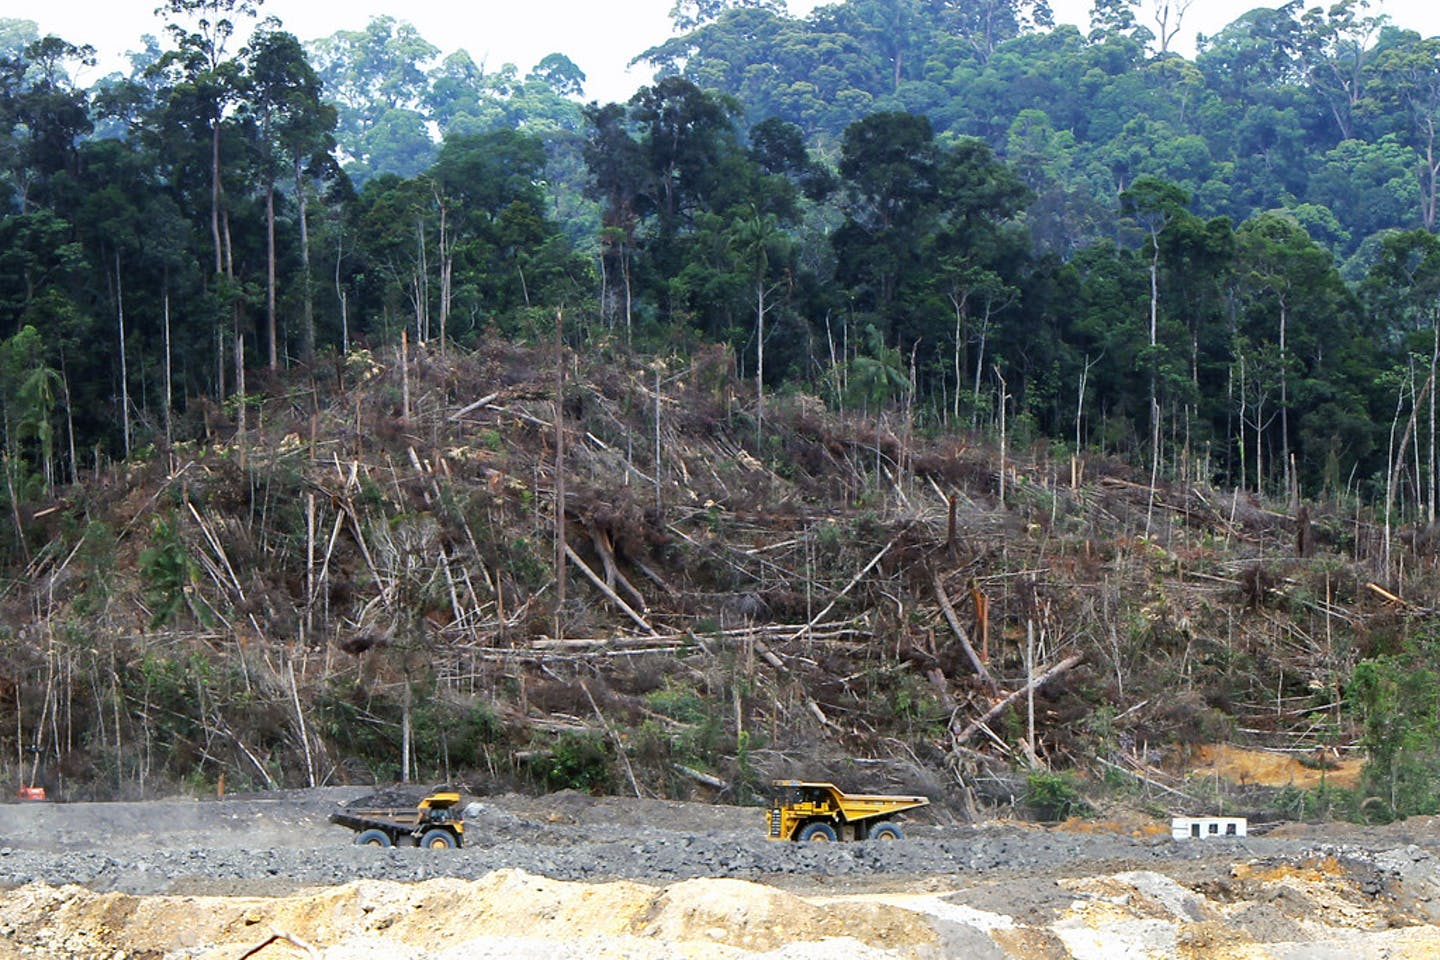 Clearing forrests for the Lumbung Coal Mine, Central Kalimantan, Indonesia.